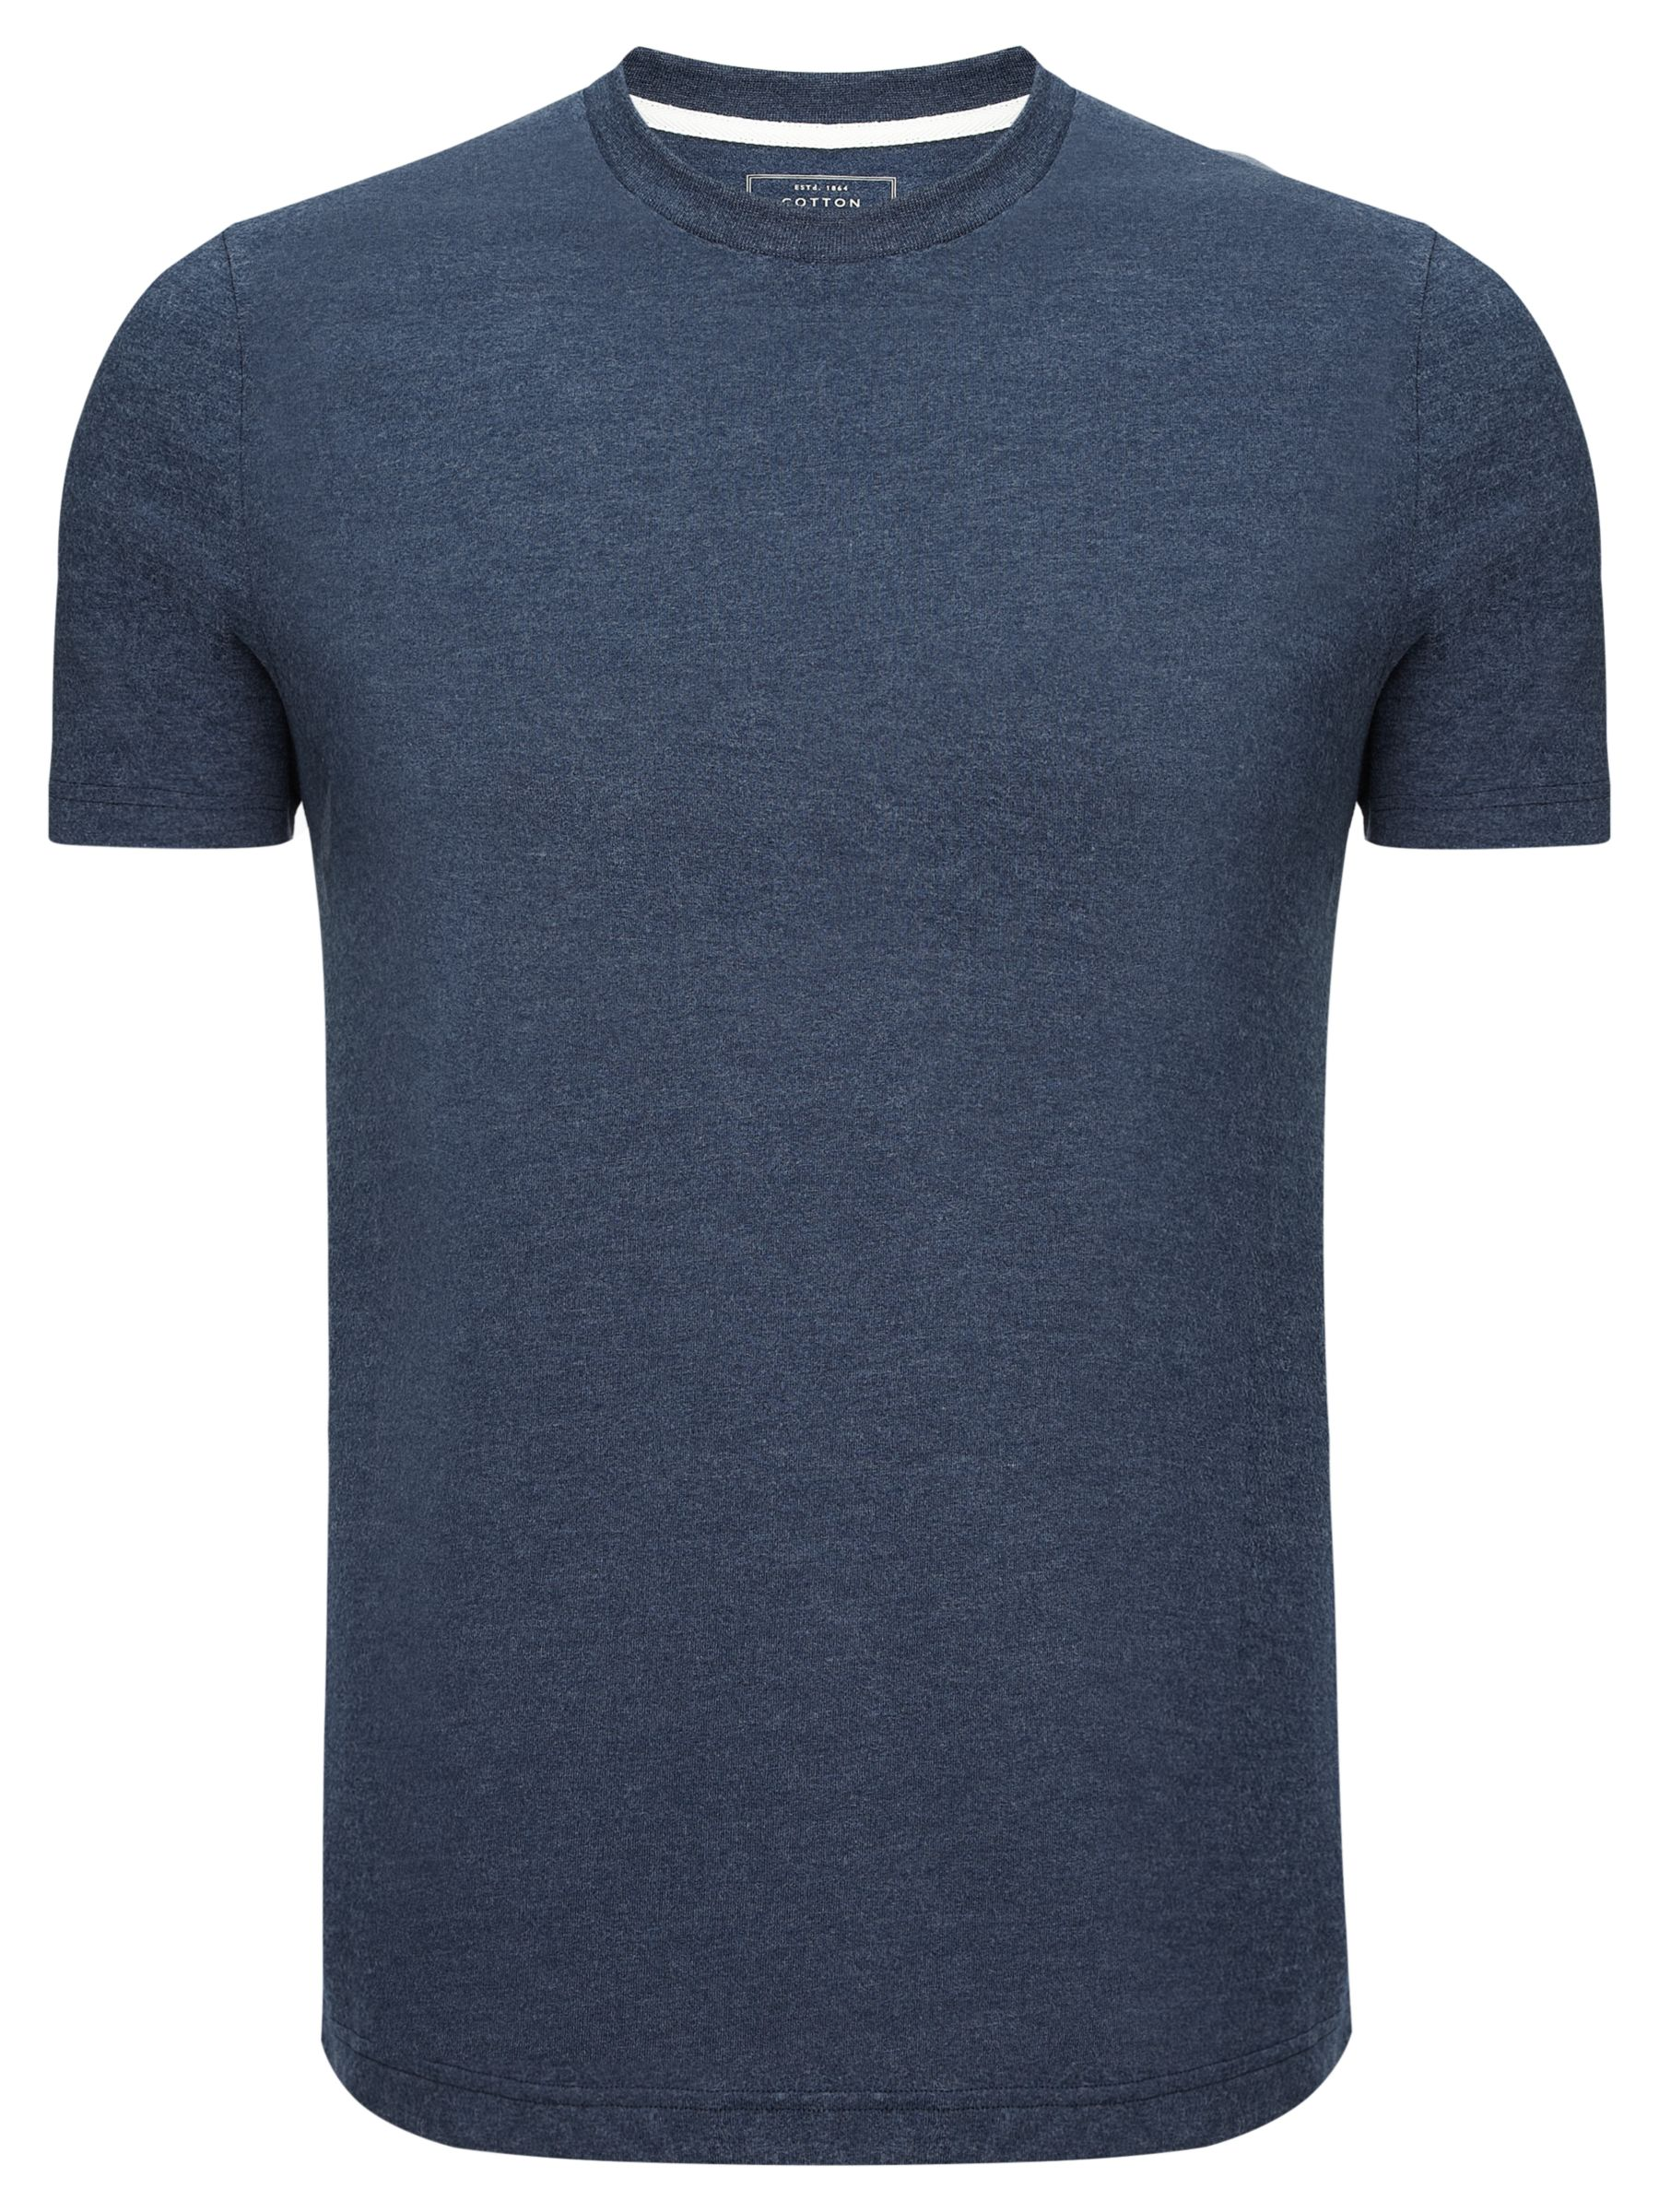 John Lewis Crew Neck Cotton Rich T-Shirt, Navy